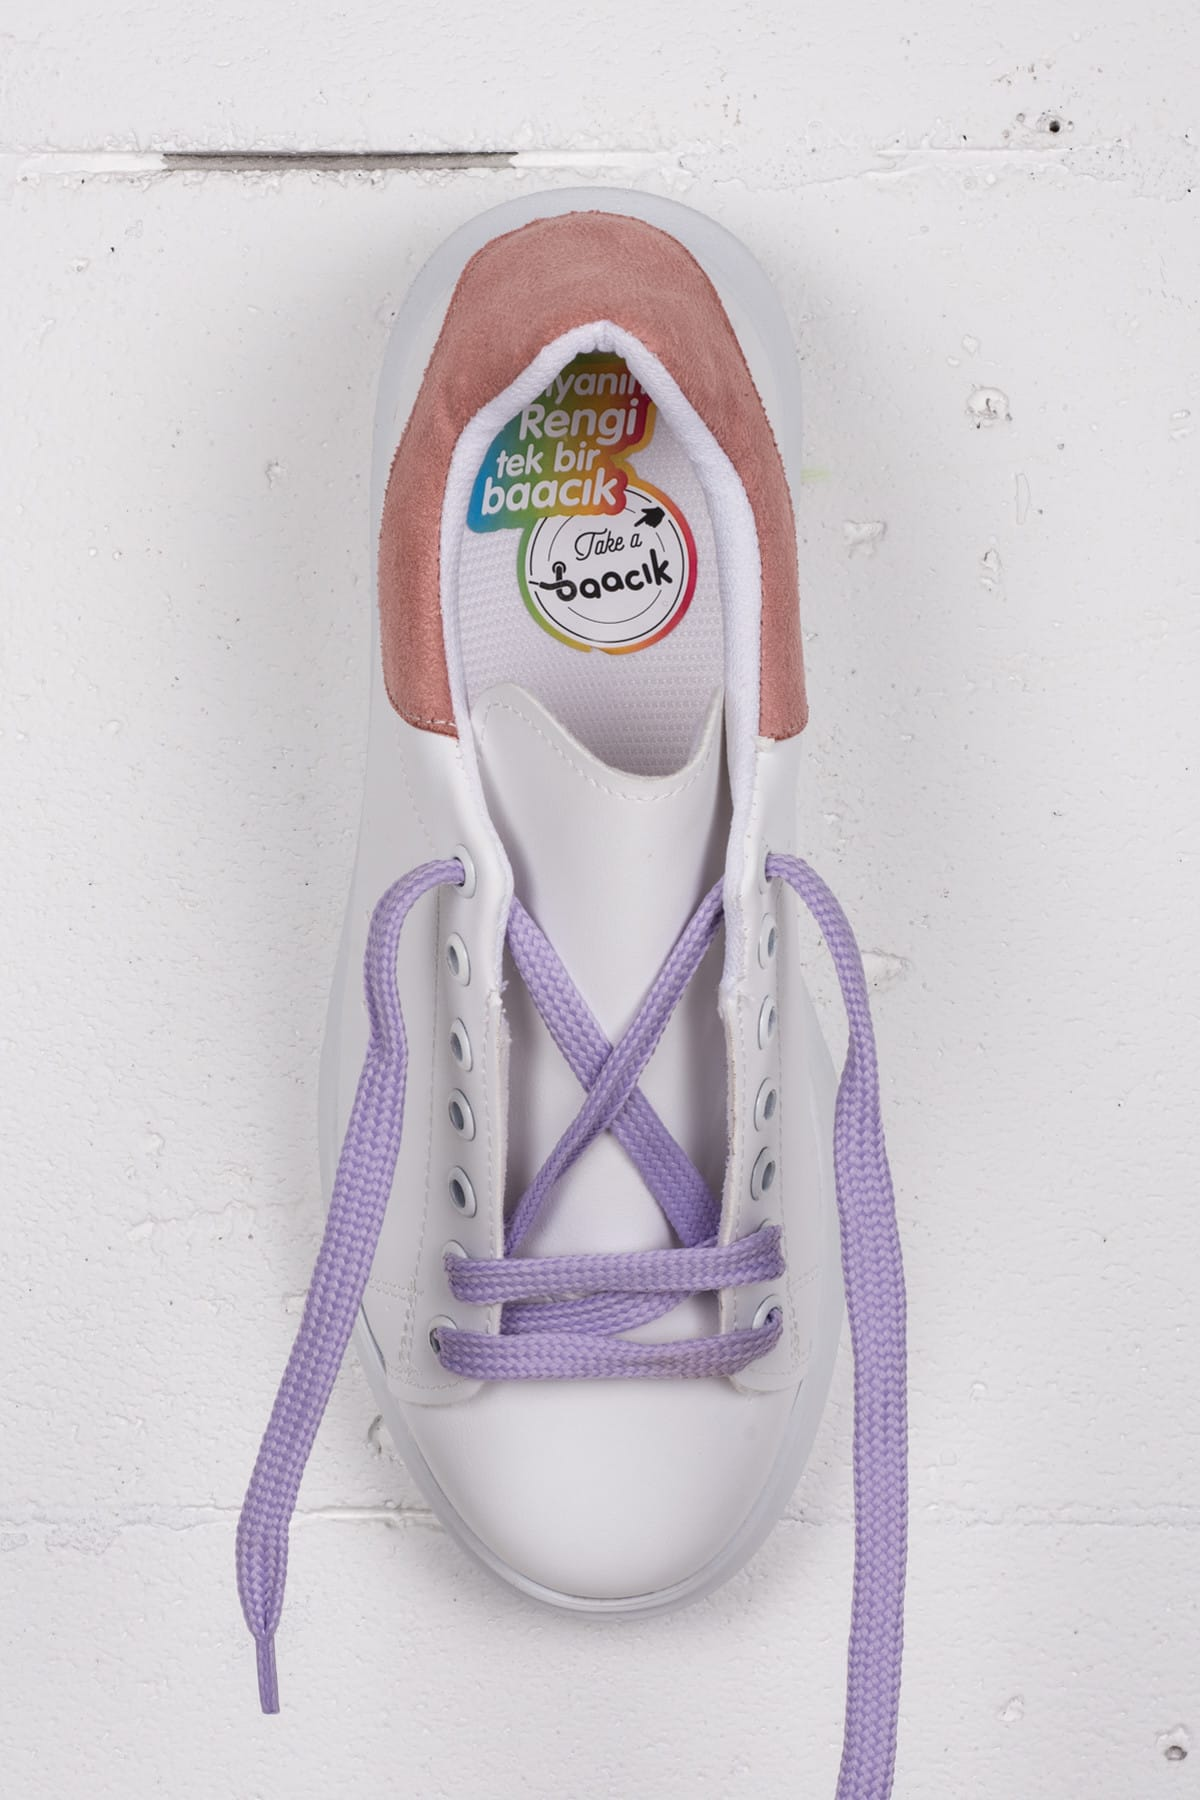 New Season Premium Quality Shoelaces for Sneakers or Sport Boots with Different Color Options